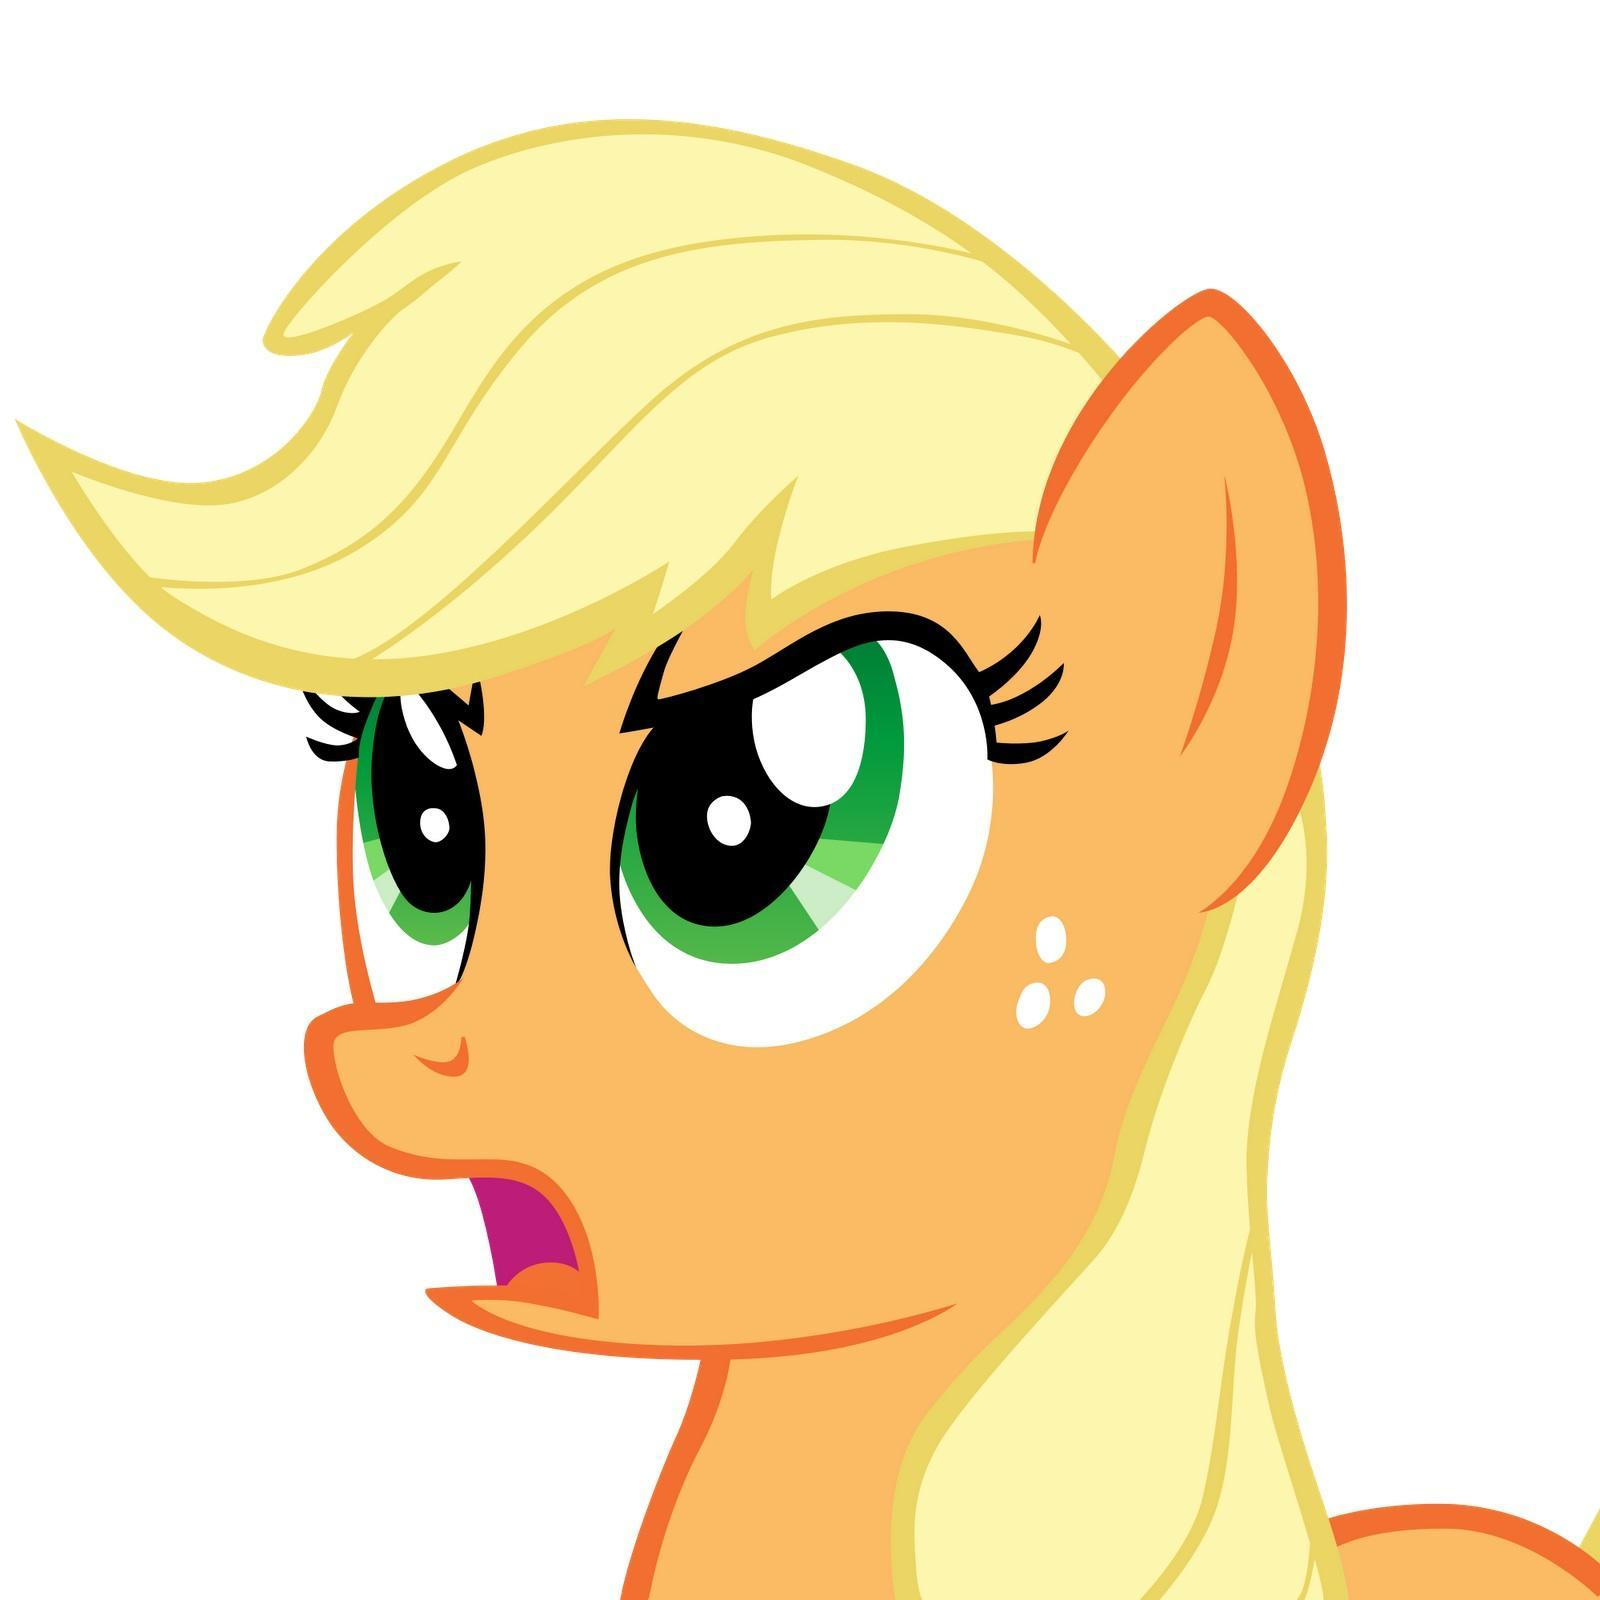 What does Applejack always wear?